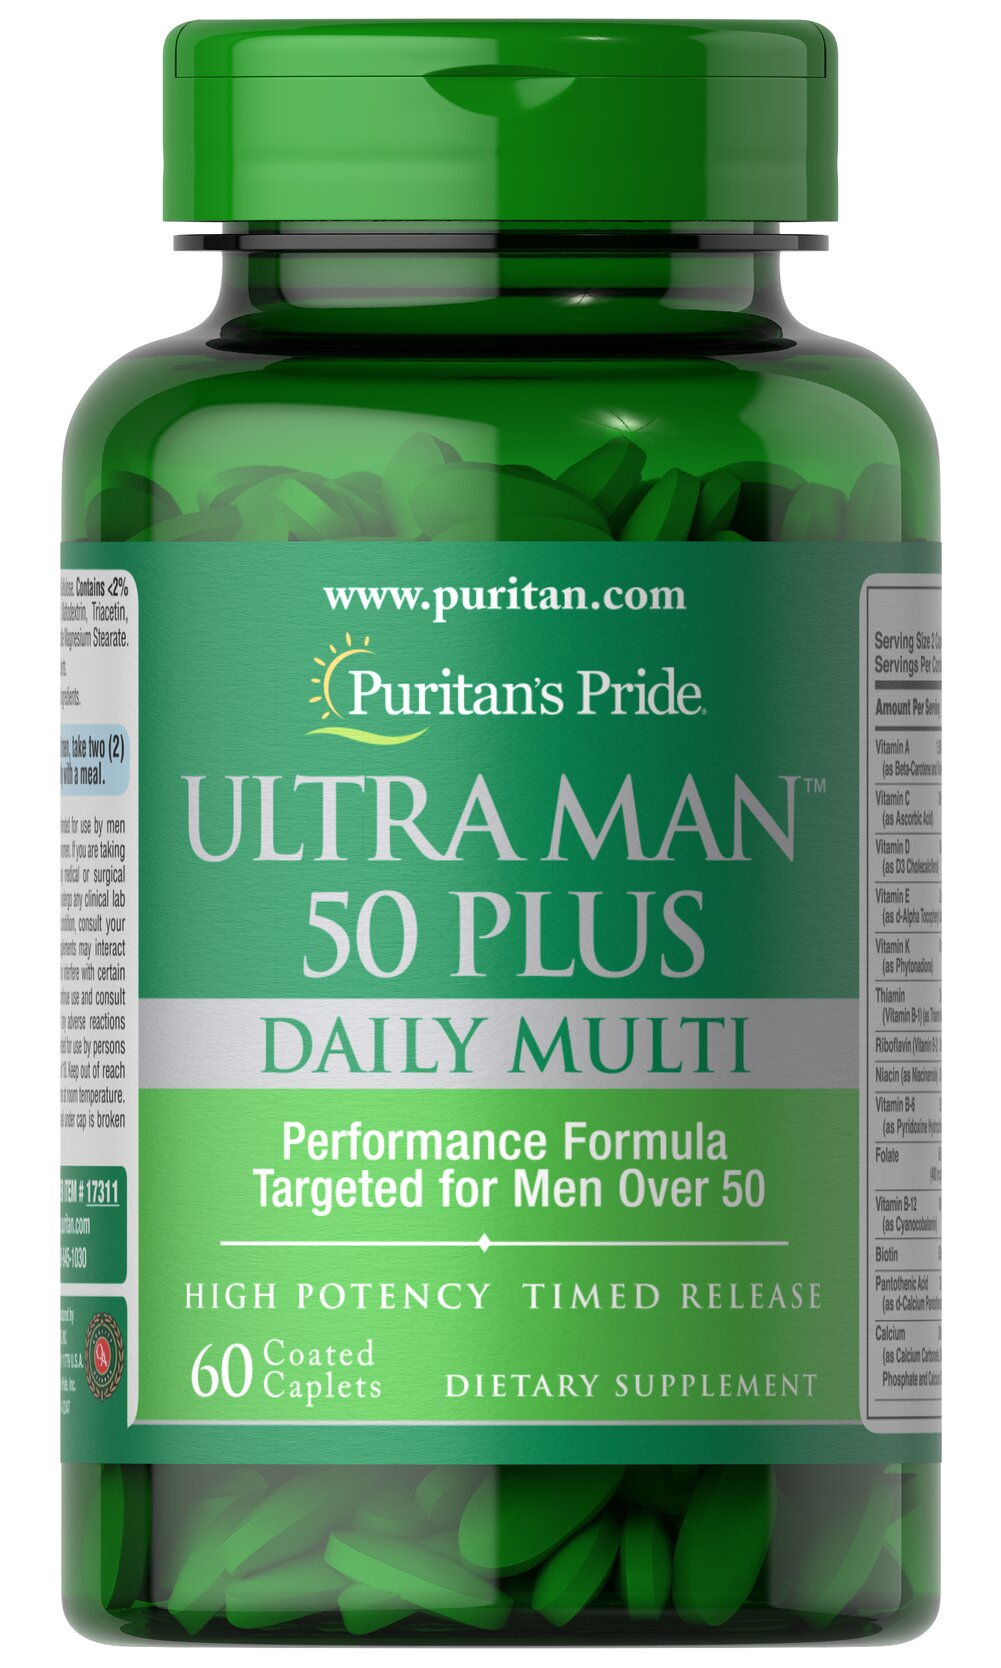 Ultra Vita Man™ 50 Plus • High performance multi with over 50 important nutrients for men's health**<br />• Created especially for men over 50<br />• Unlike other multis, Ultra Vita Man 50 Plus is enhanced with vital nutrients not commonly found in the diet.<br />• Just two coated caplets a day<br />• Features Zinc, an important mineral that contributes to normal semen production and sexual health** 60 Caplets  $20.99